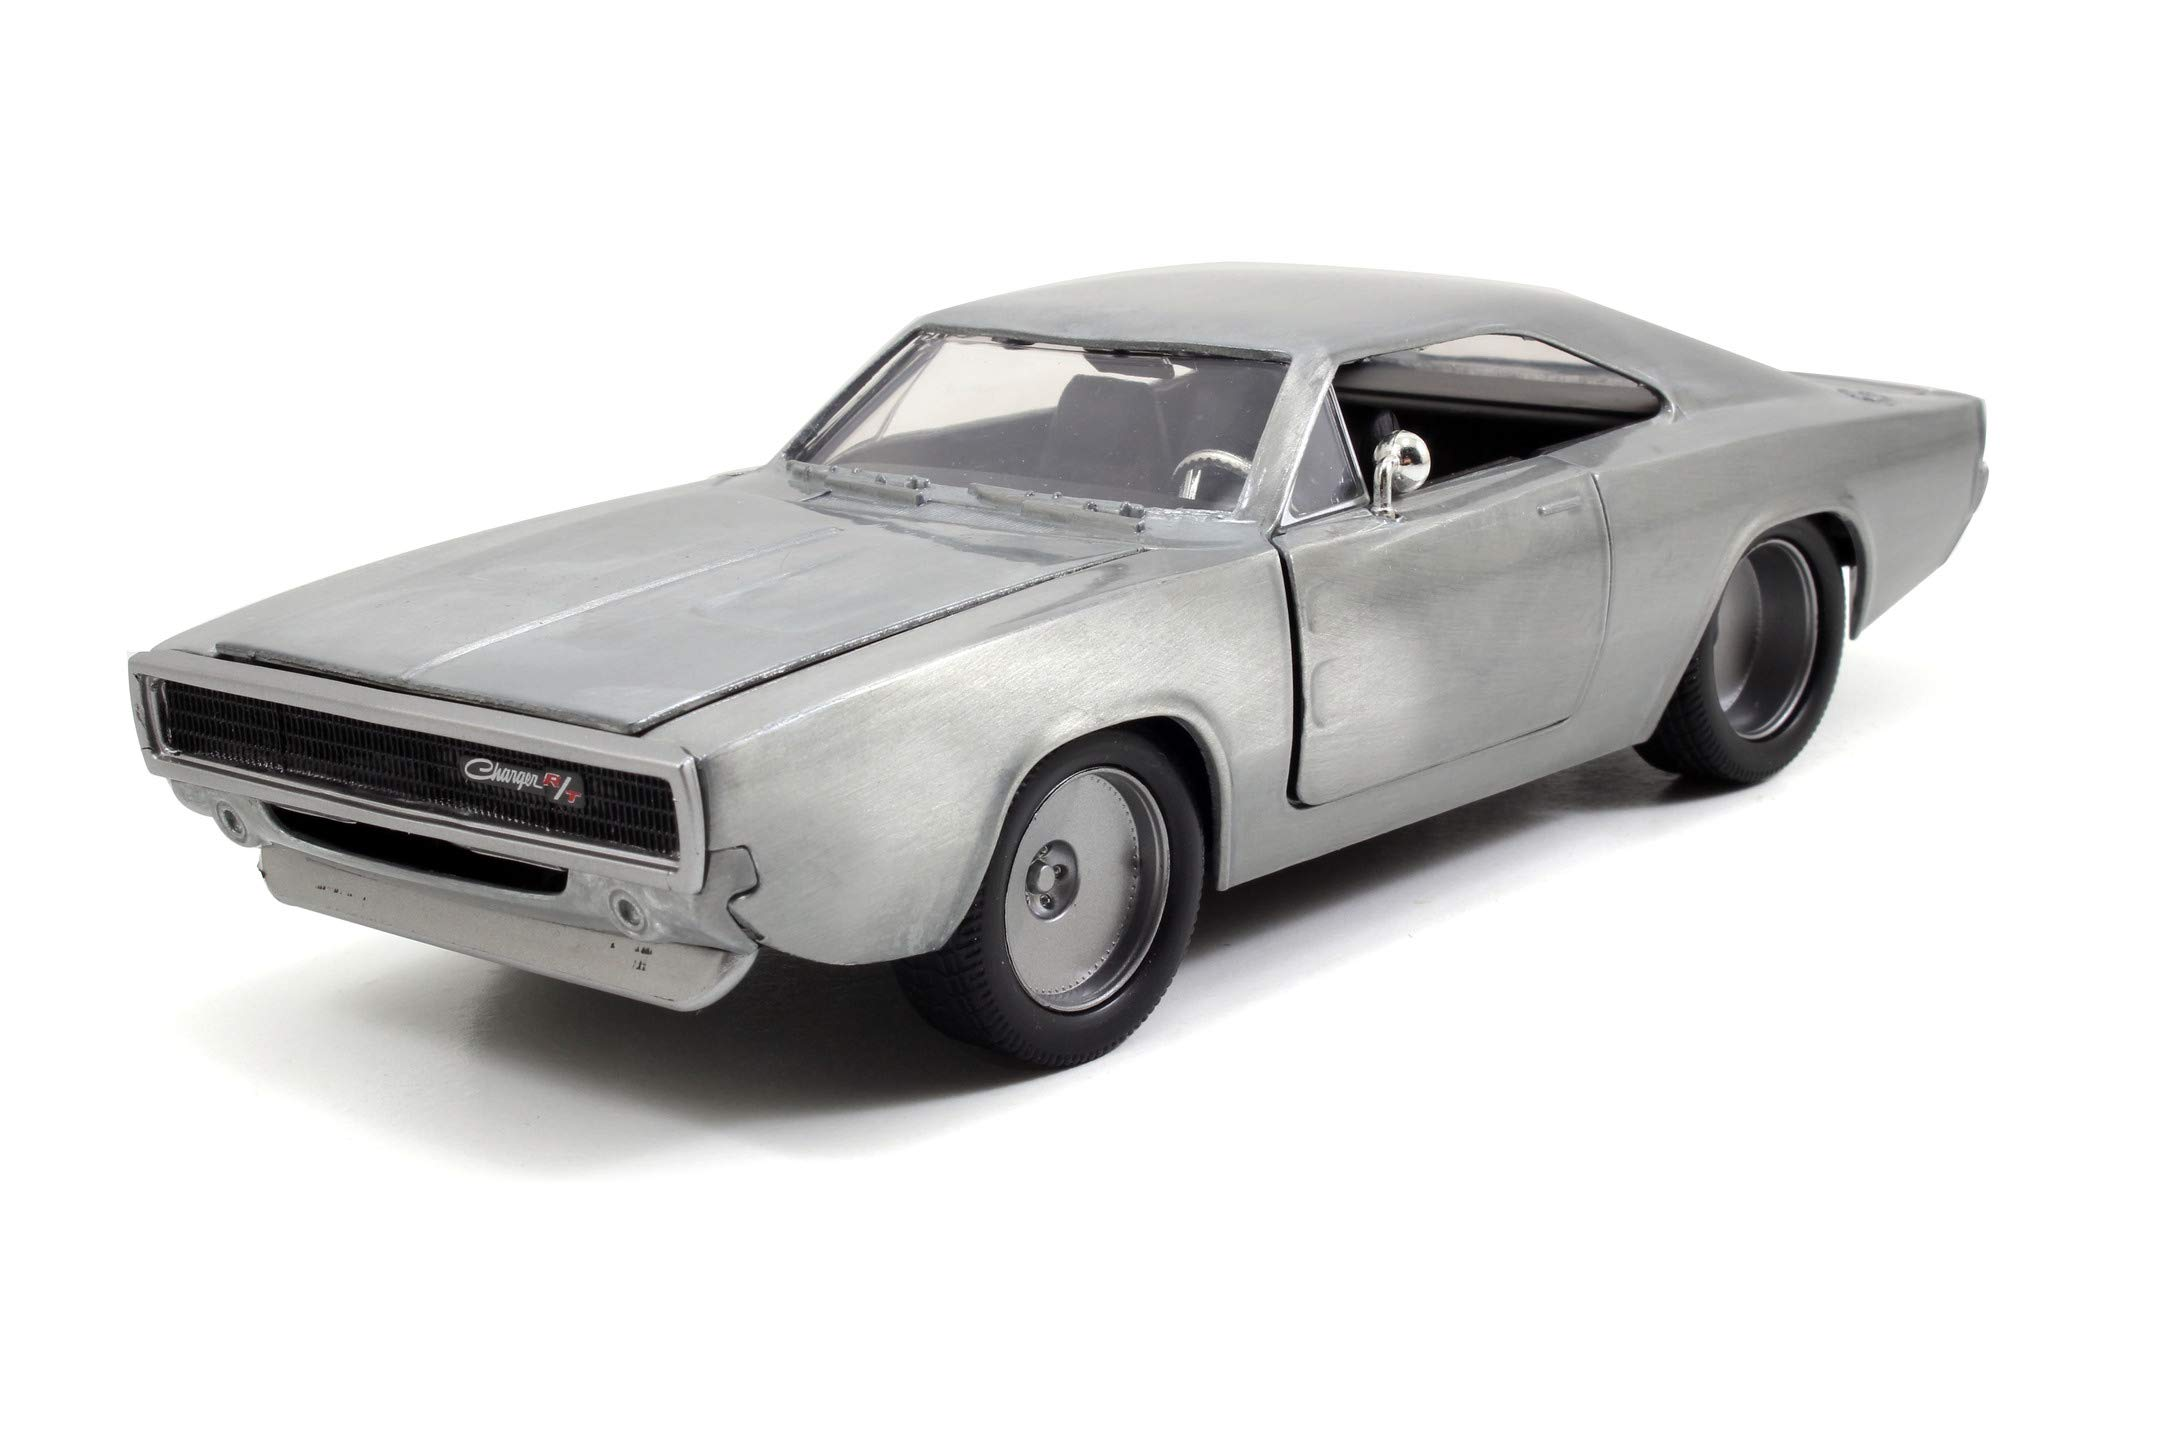 Fast & Furious 1:24 Dom's 1968 Dodge Charger R/T Die-cast Car Bare Metal, Toys for Kids and Adults, 97336